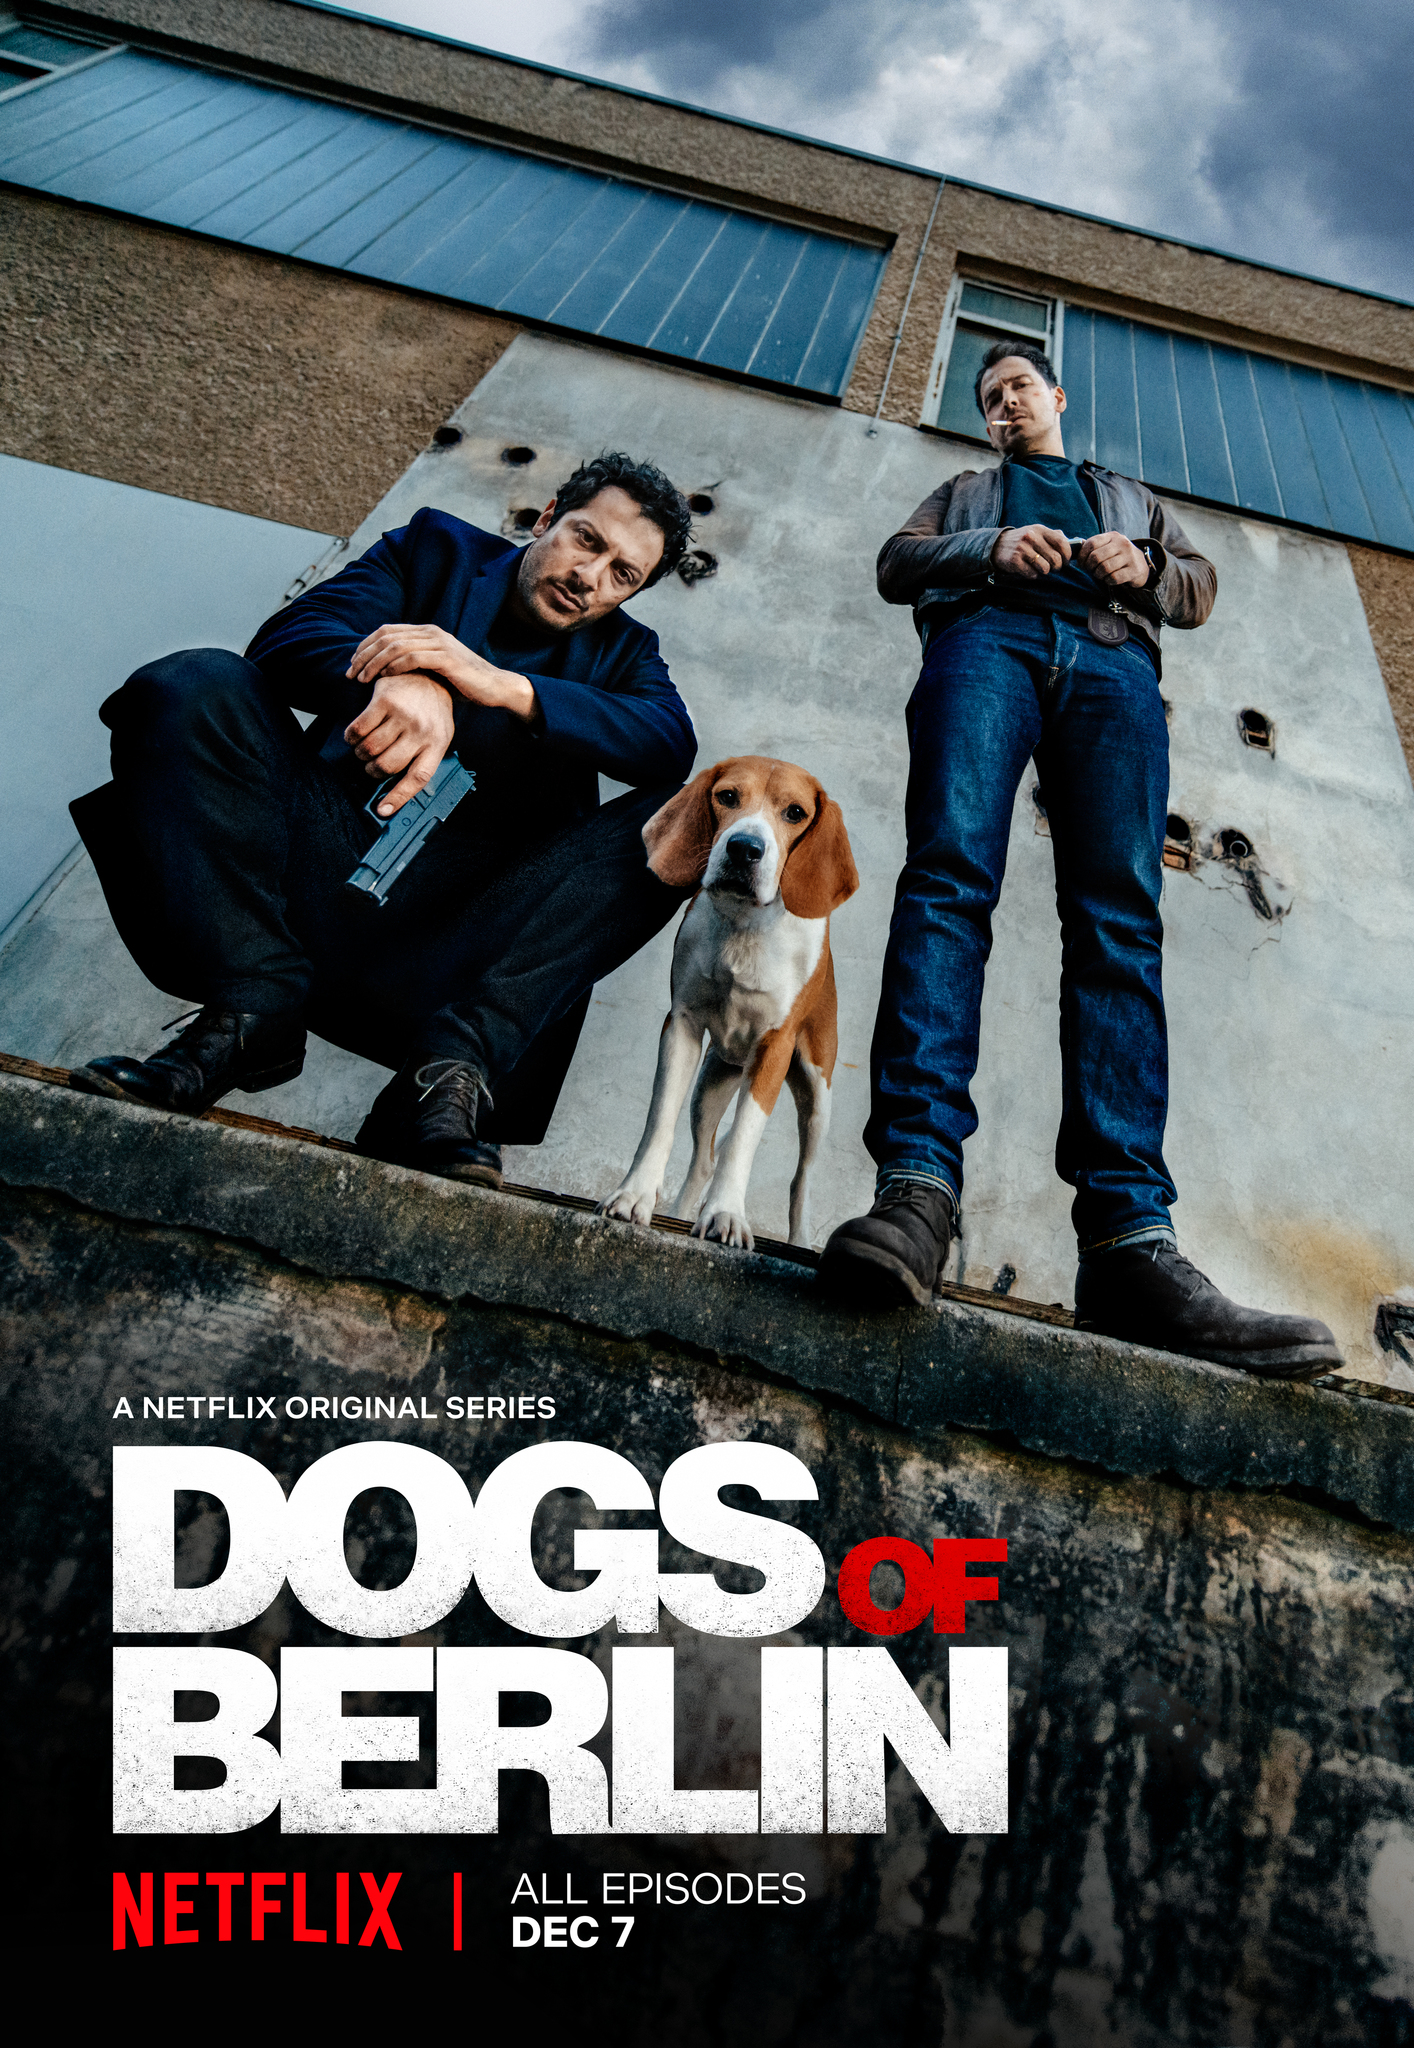 Berlyno šunys (1 Sezonas) / Dogs of Berlin Season 1